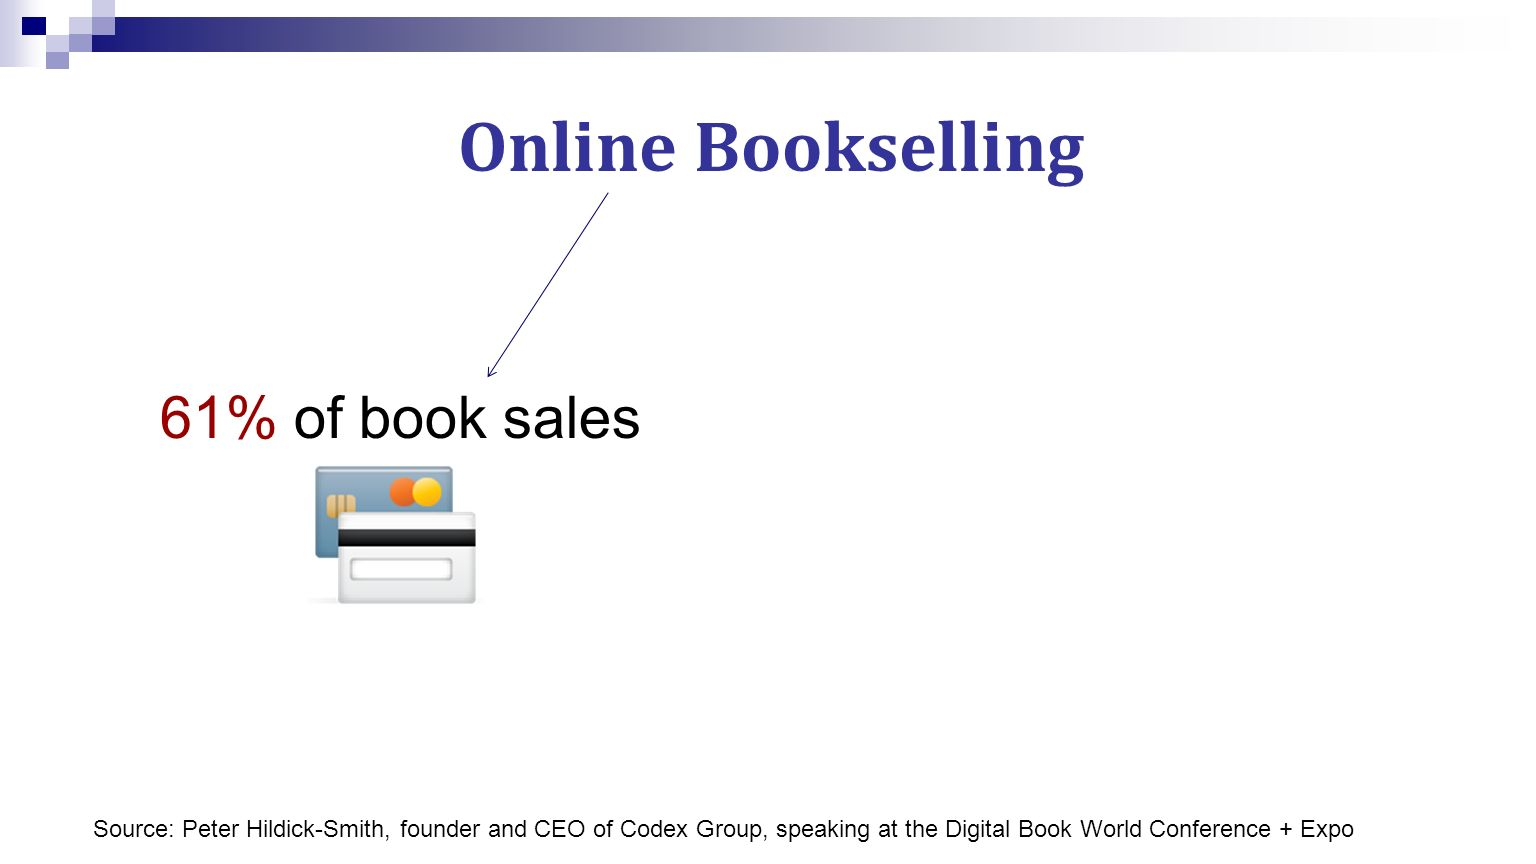 Online Bookselling 61% of book sales Source: Peter Hildick-Smith, founder and CEO of Codex Group, speaking at the Digital Book World Conference + Expo